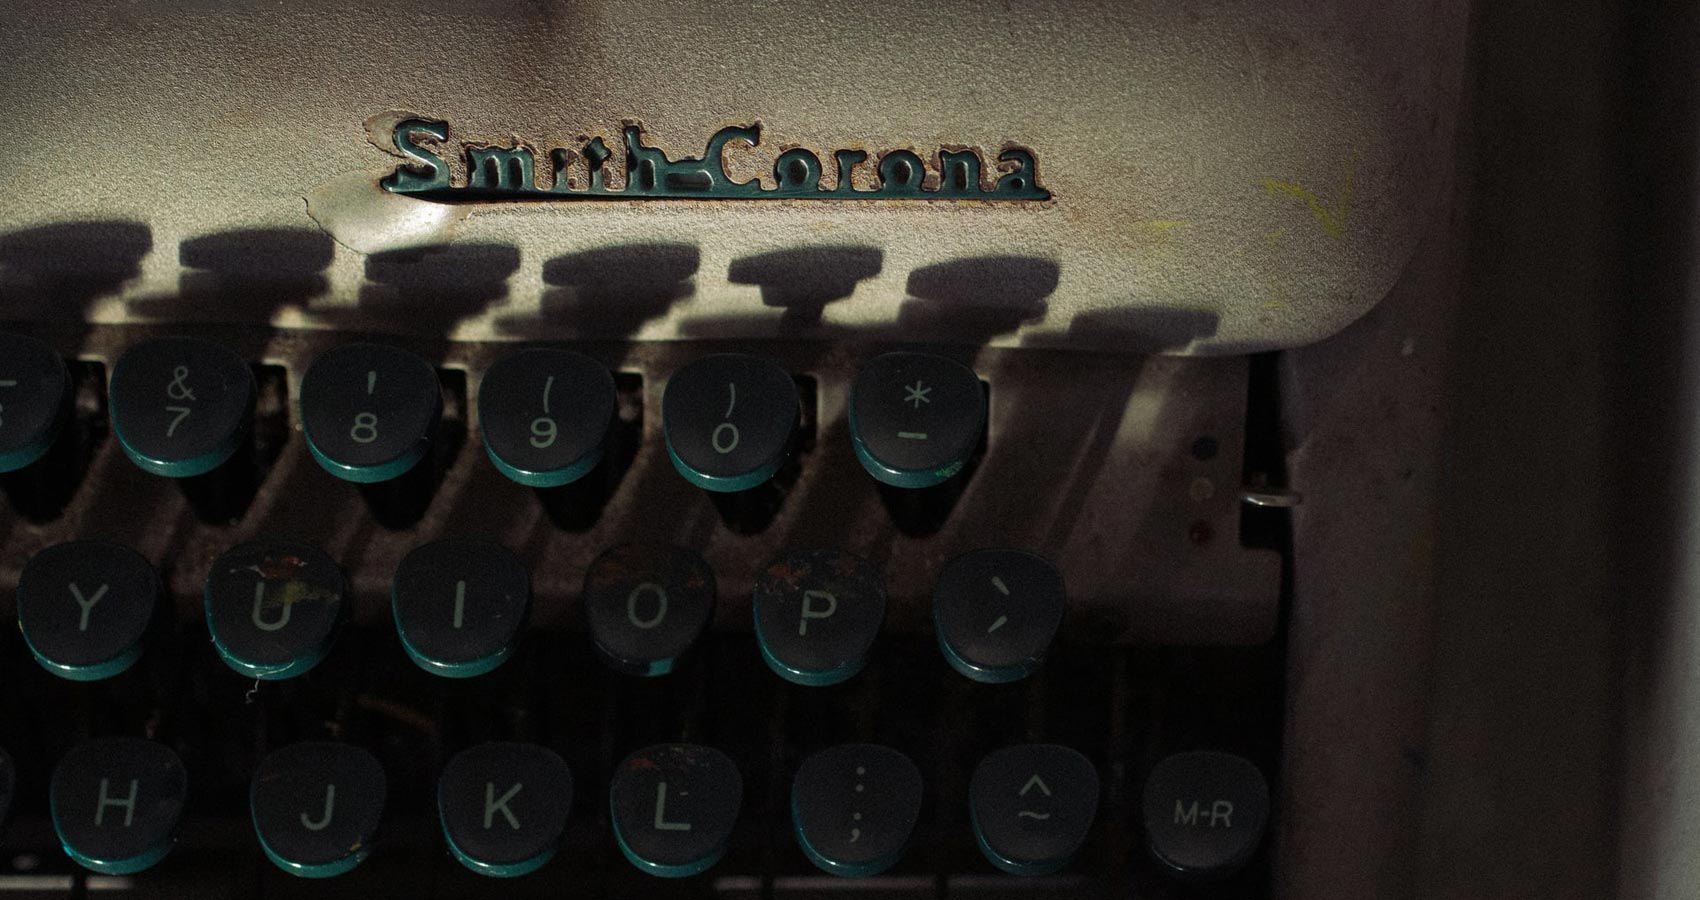 Death and The Writer, story by Harman Burgess at Spillwords.com